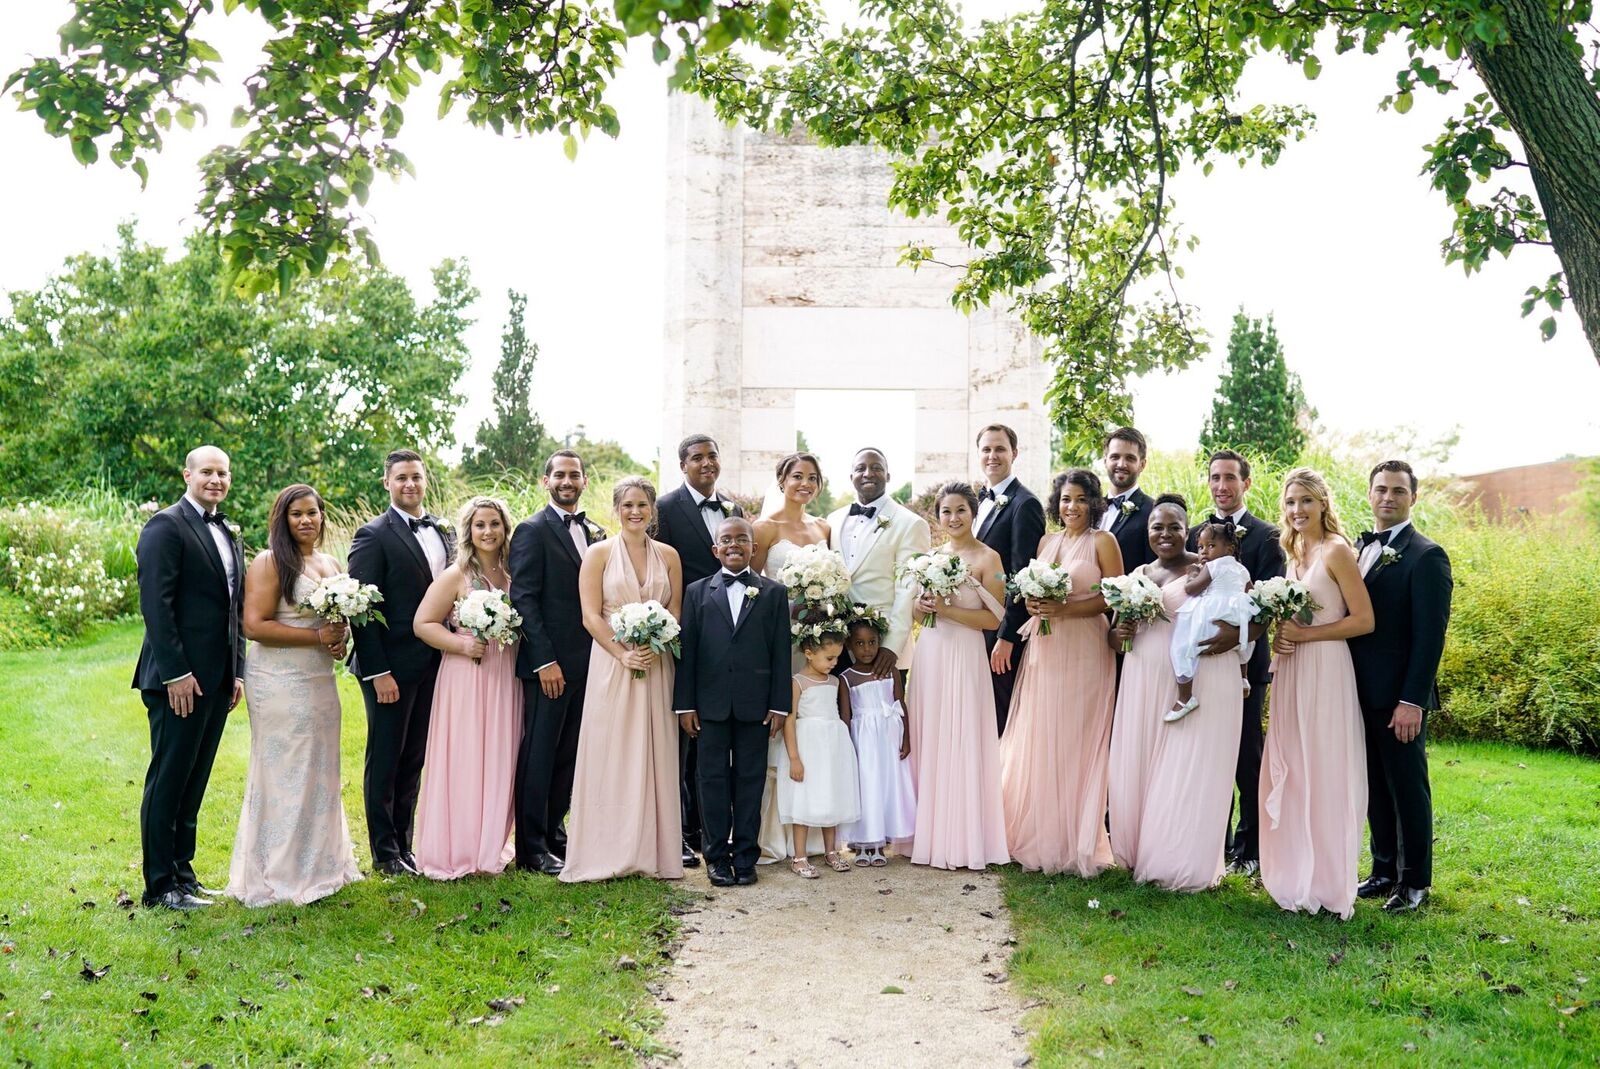 A chic garden wedding at Grounds for Sculpture in Princeton, New Jersey with white and green details to die for! Read the blog for wedding day inspiration!